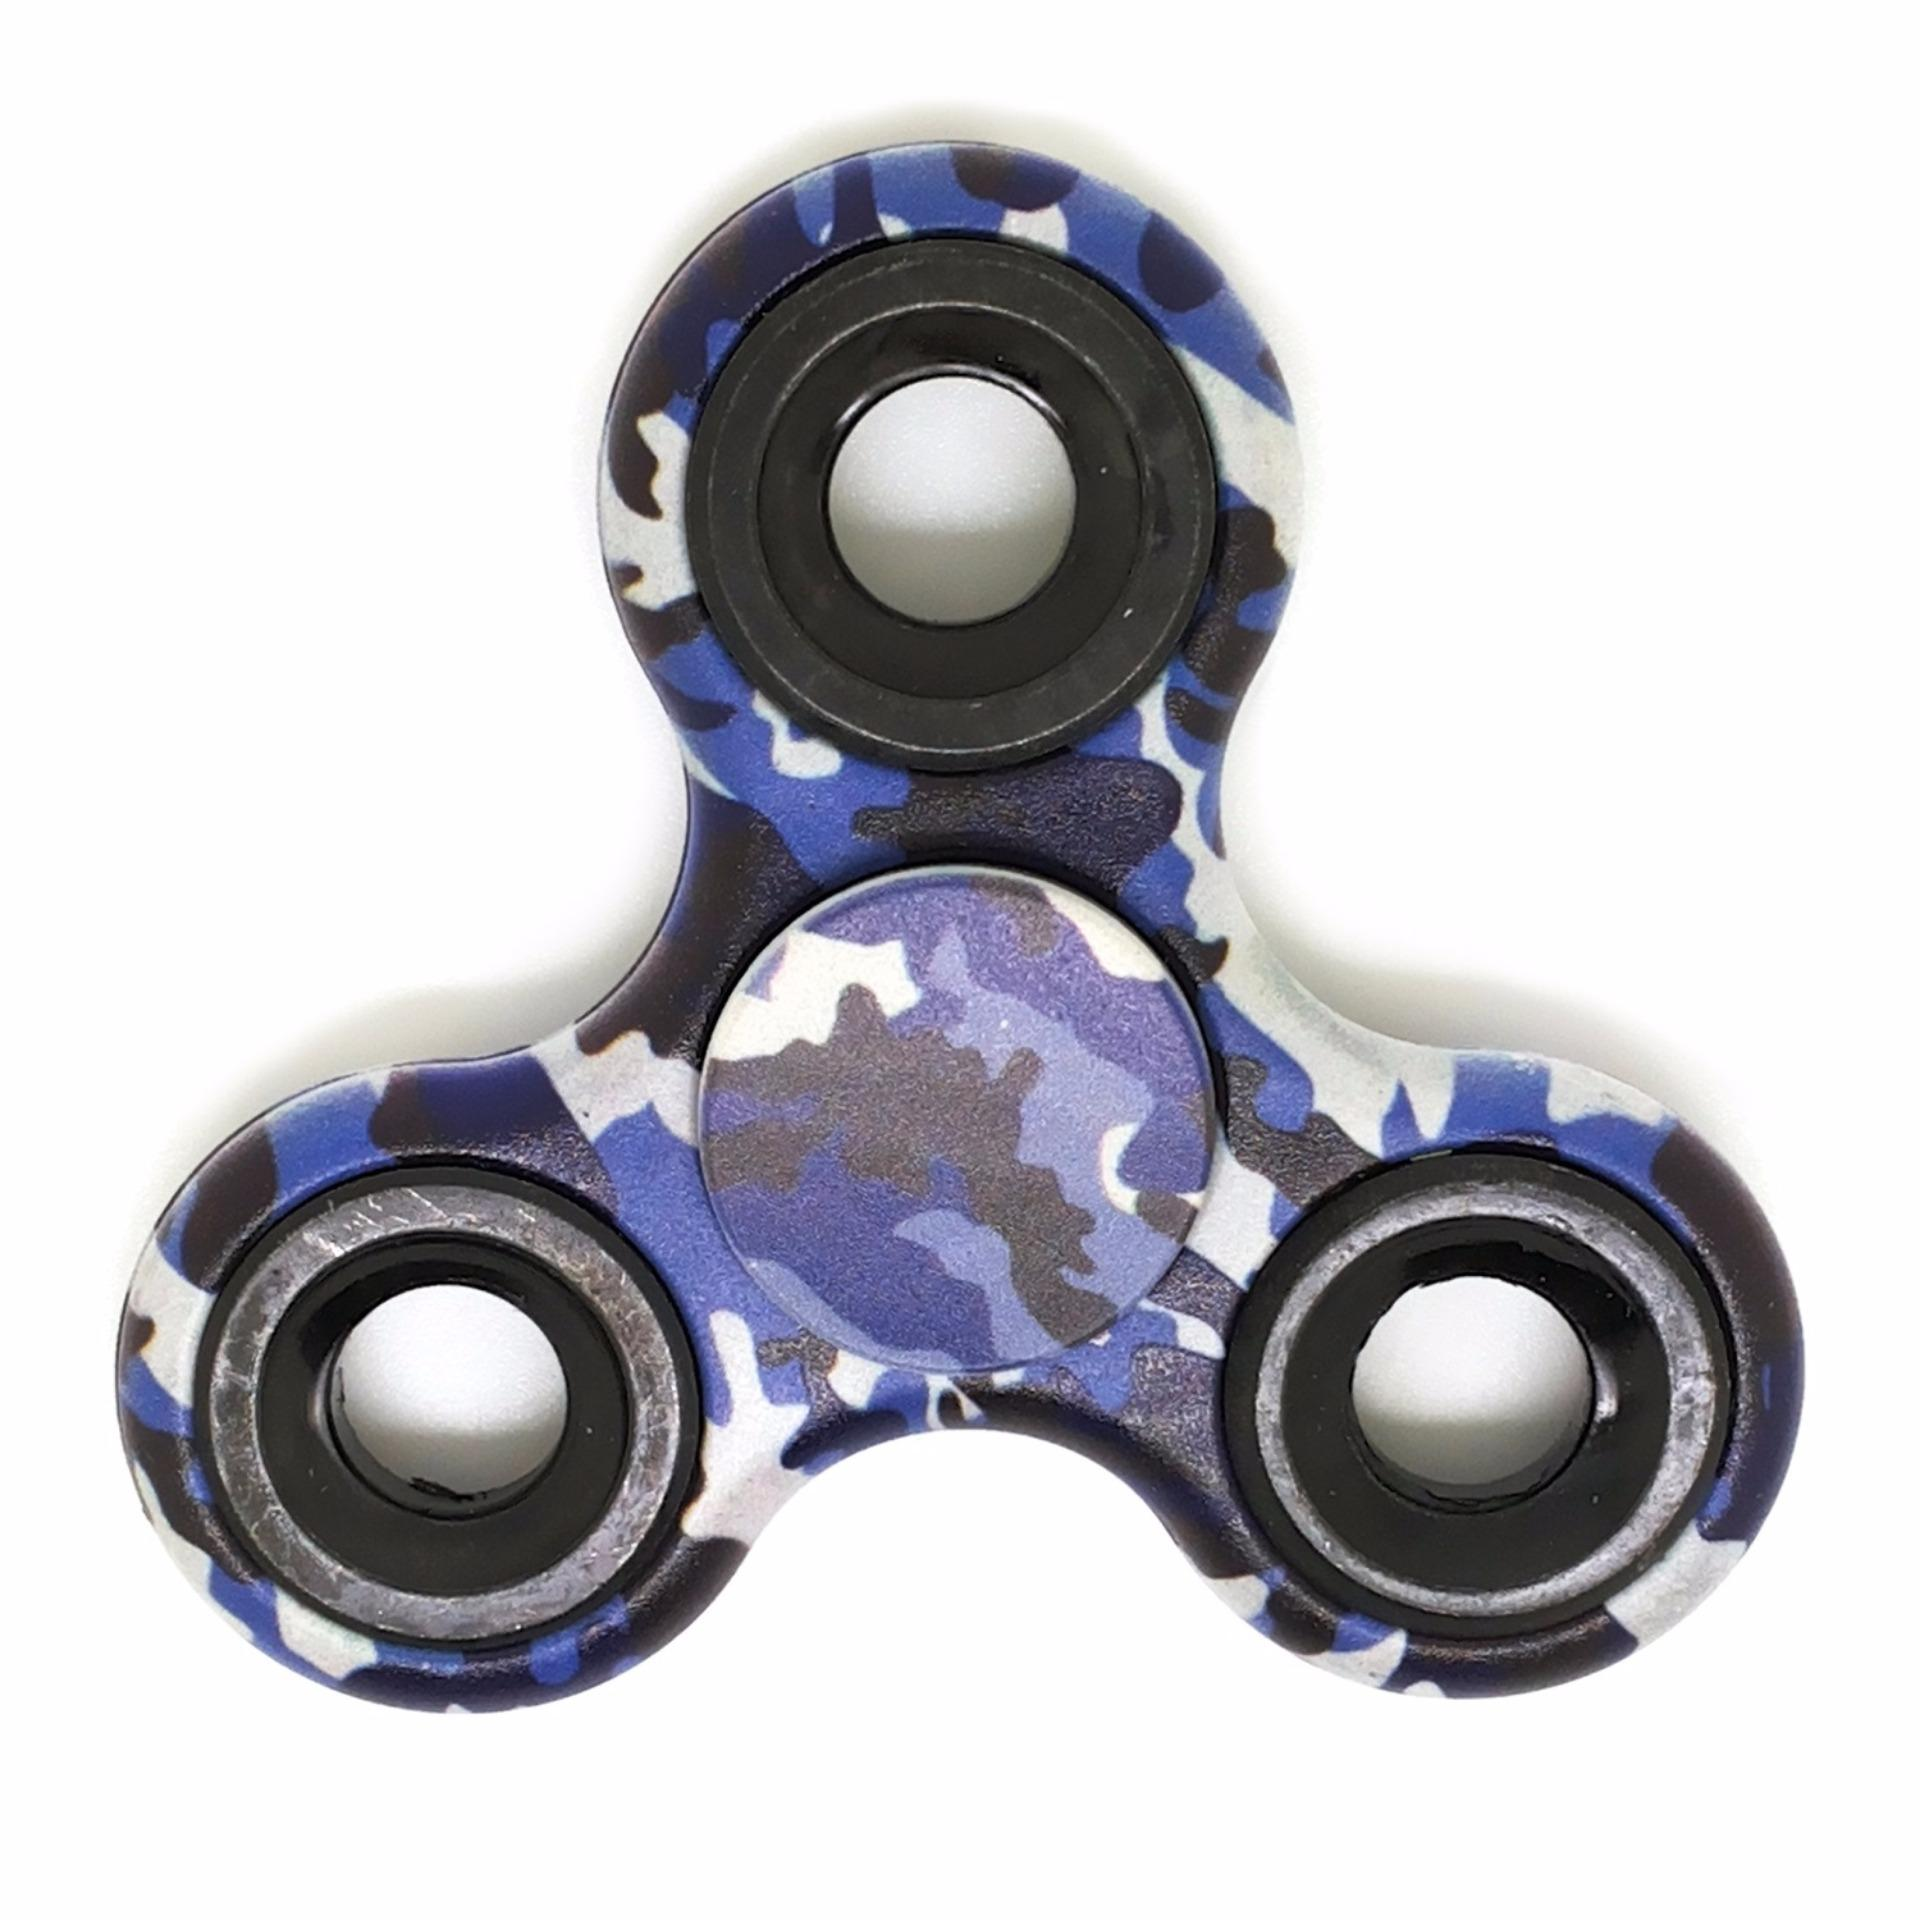 Fidget Spinner Camouflage Camo Metal Hand Finger Toys for Focus Anxiety & Stress Relief EDC Tri